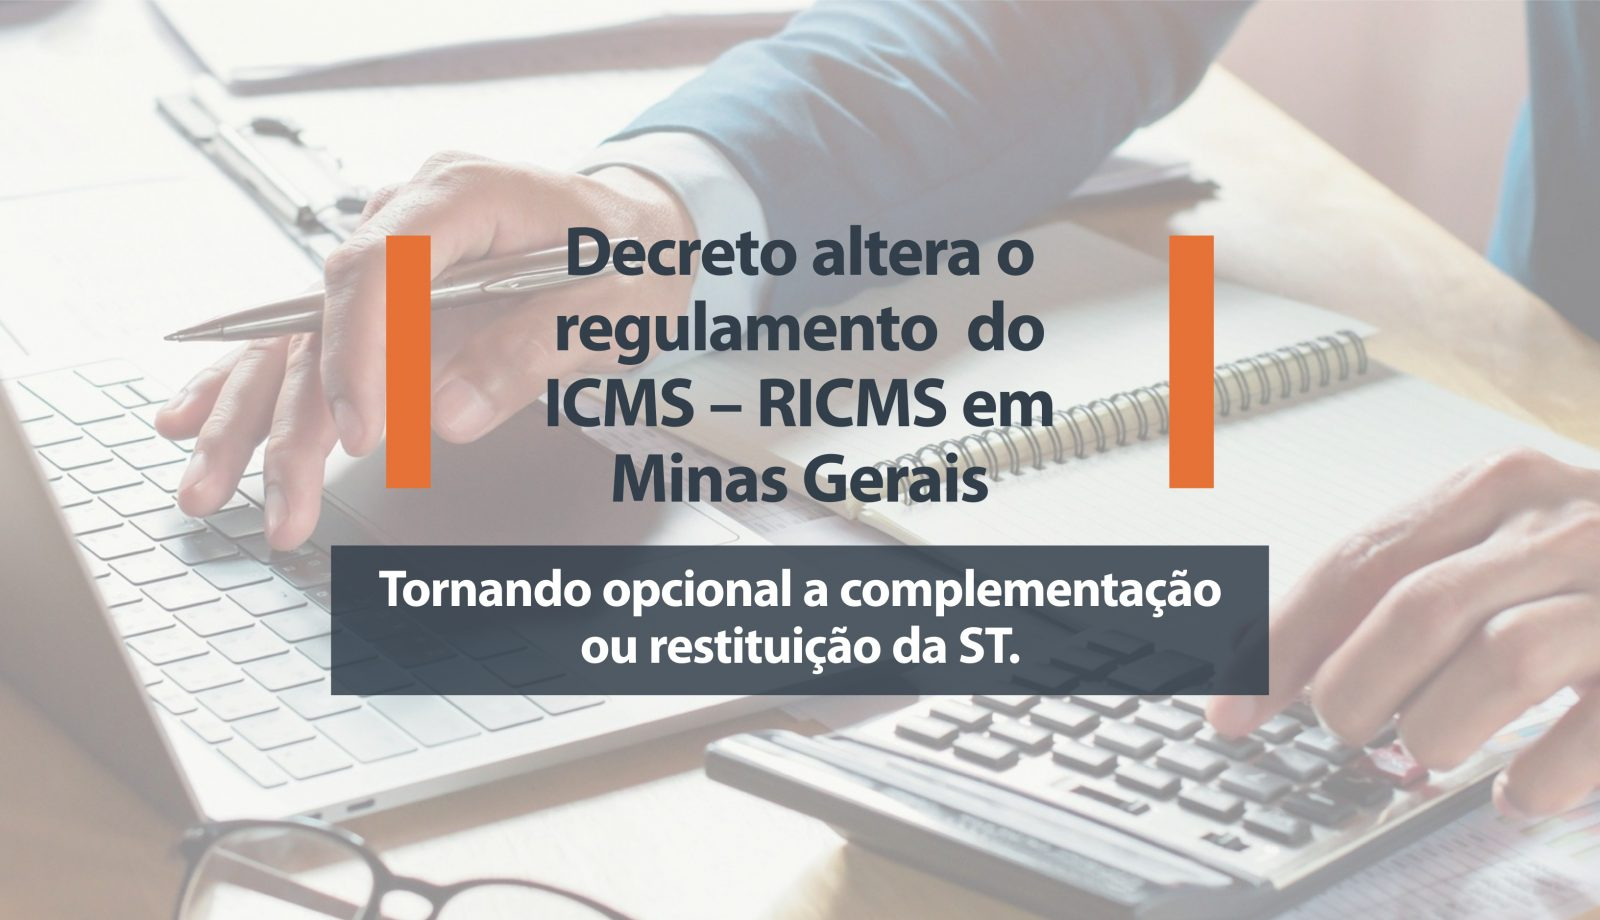 Decreto altera o regulamento do ICMS